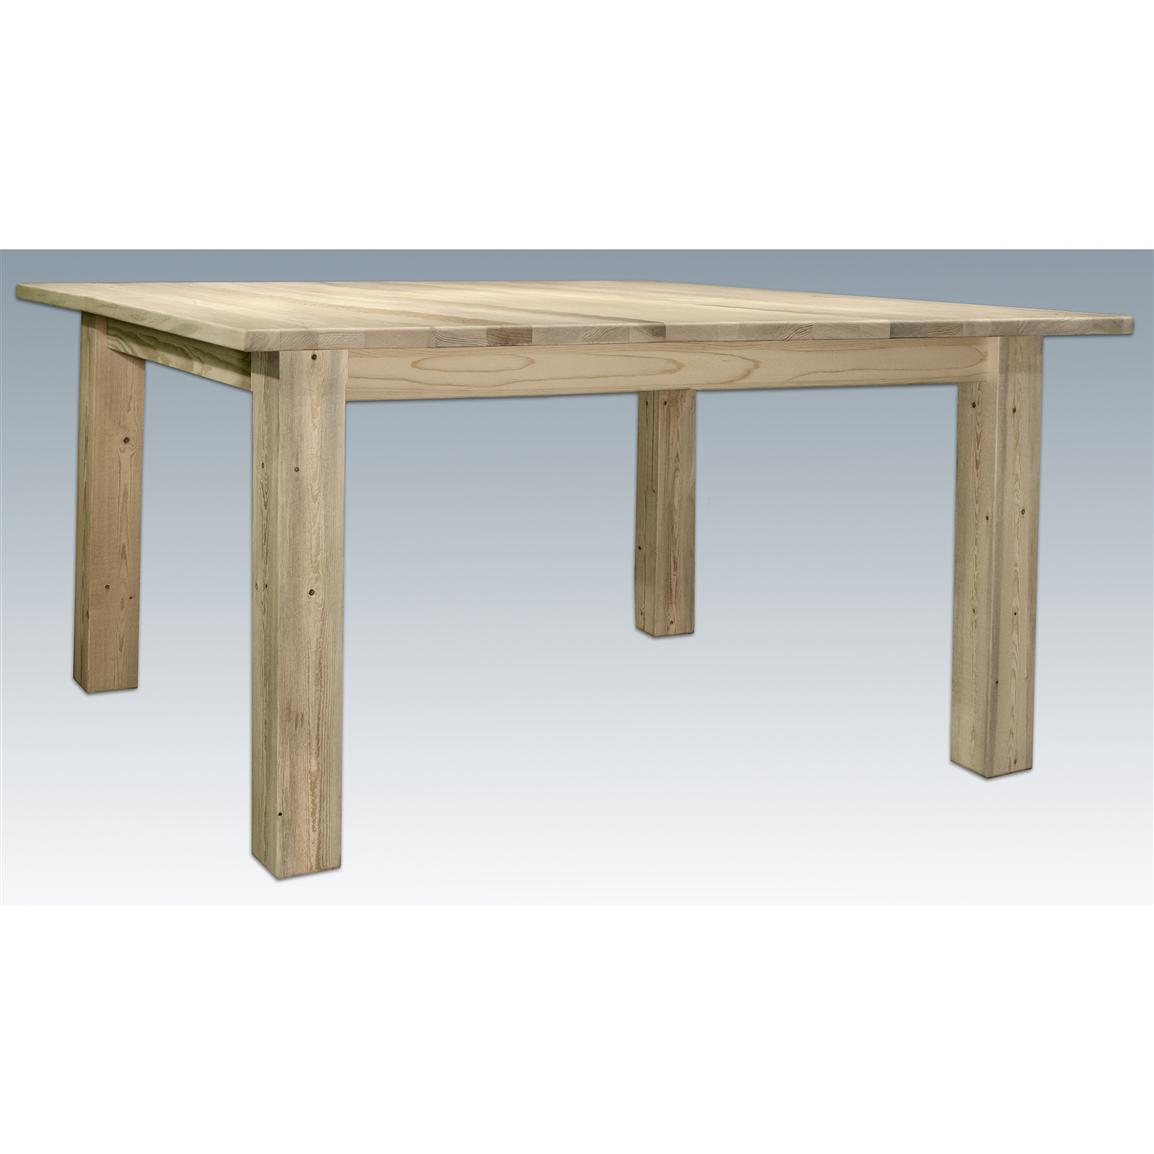 Montana Woodworks® Homestead Collection 4-post Dining Table, Ready to Finish